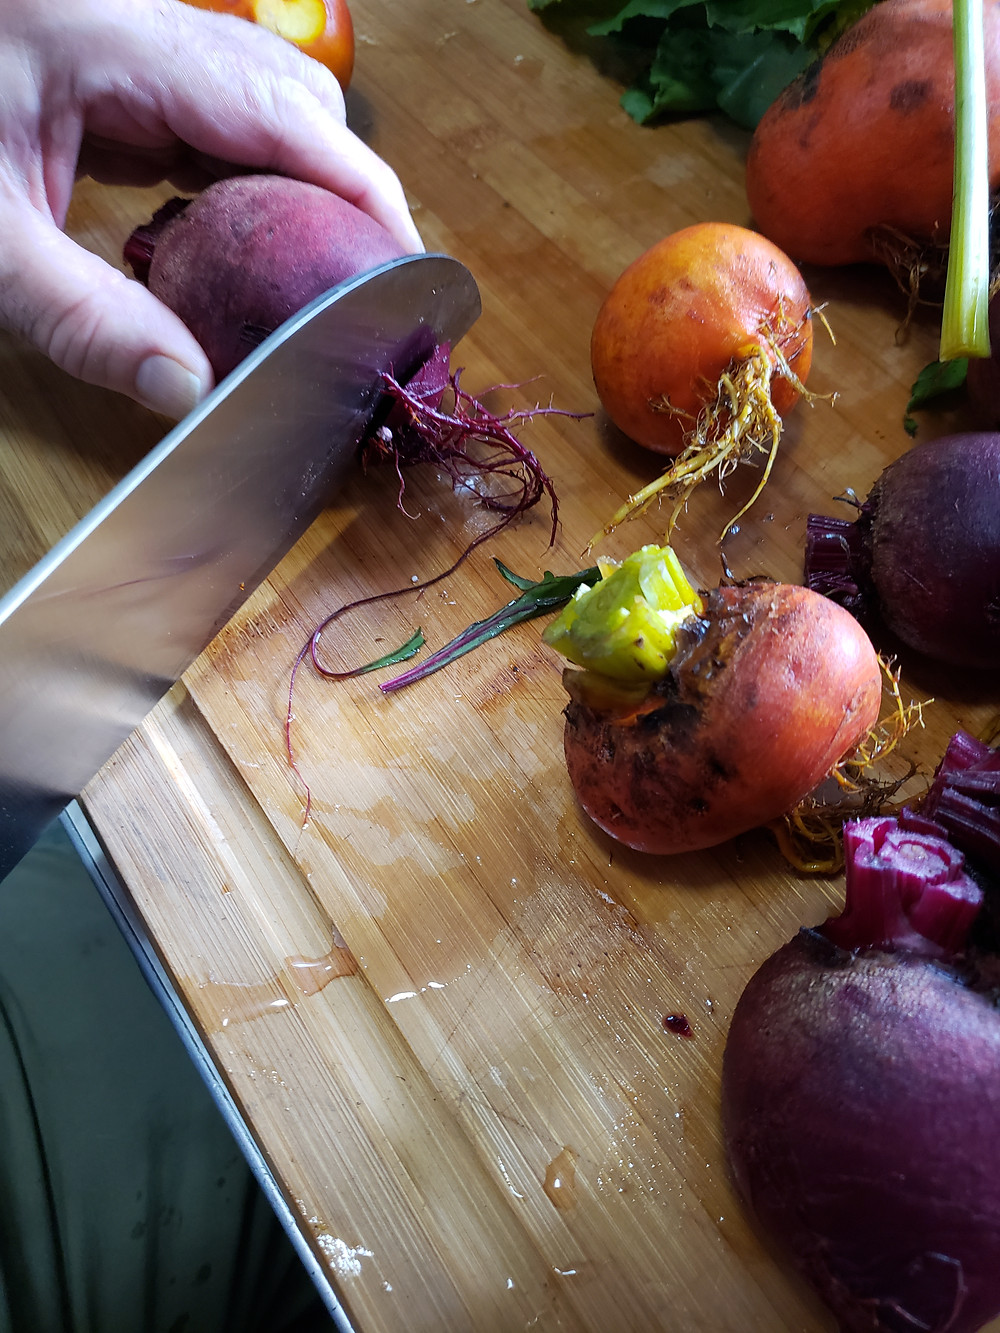 A close-up shot of the beets with greens removed on a wooden cutting board. A left hand holds a beet, while the right holds a knife in mid-process of cutting the root ends off a beet root. End photo ID.